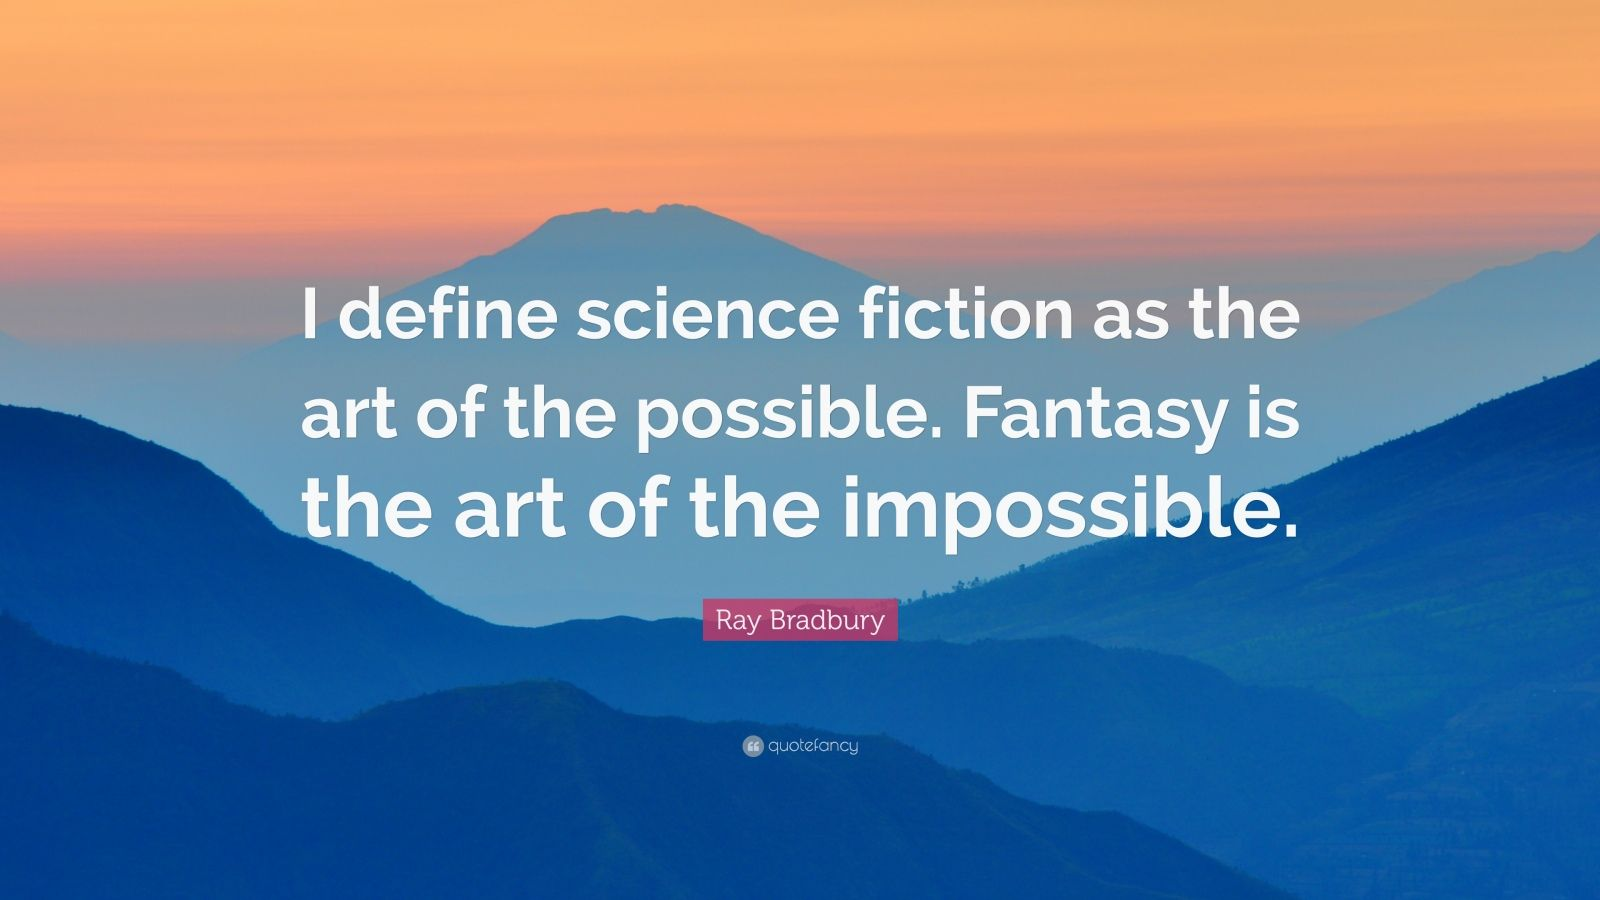 definition of science fiction Science fiction is a genre of fiction with imaginative but more or less plausible content such as settings in the future, futuristic science and technology, space travel, parallel universes, aliens, and paranormal abilities.